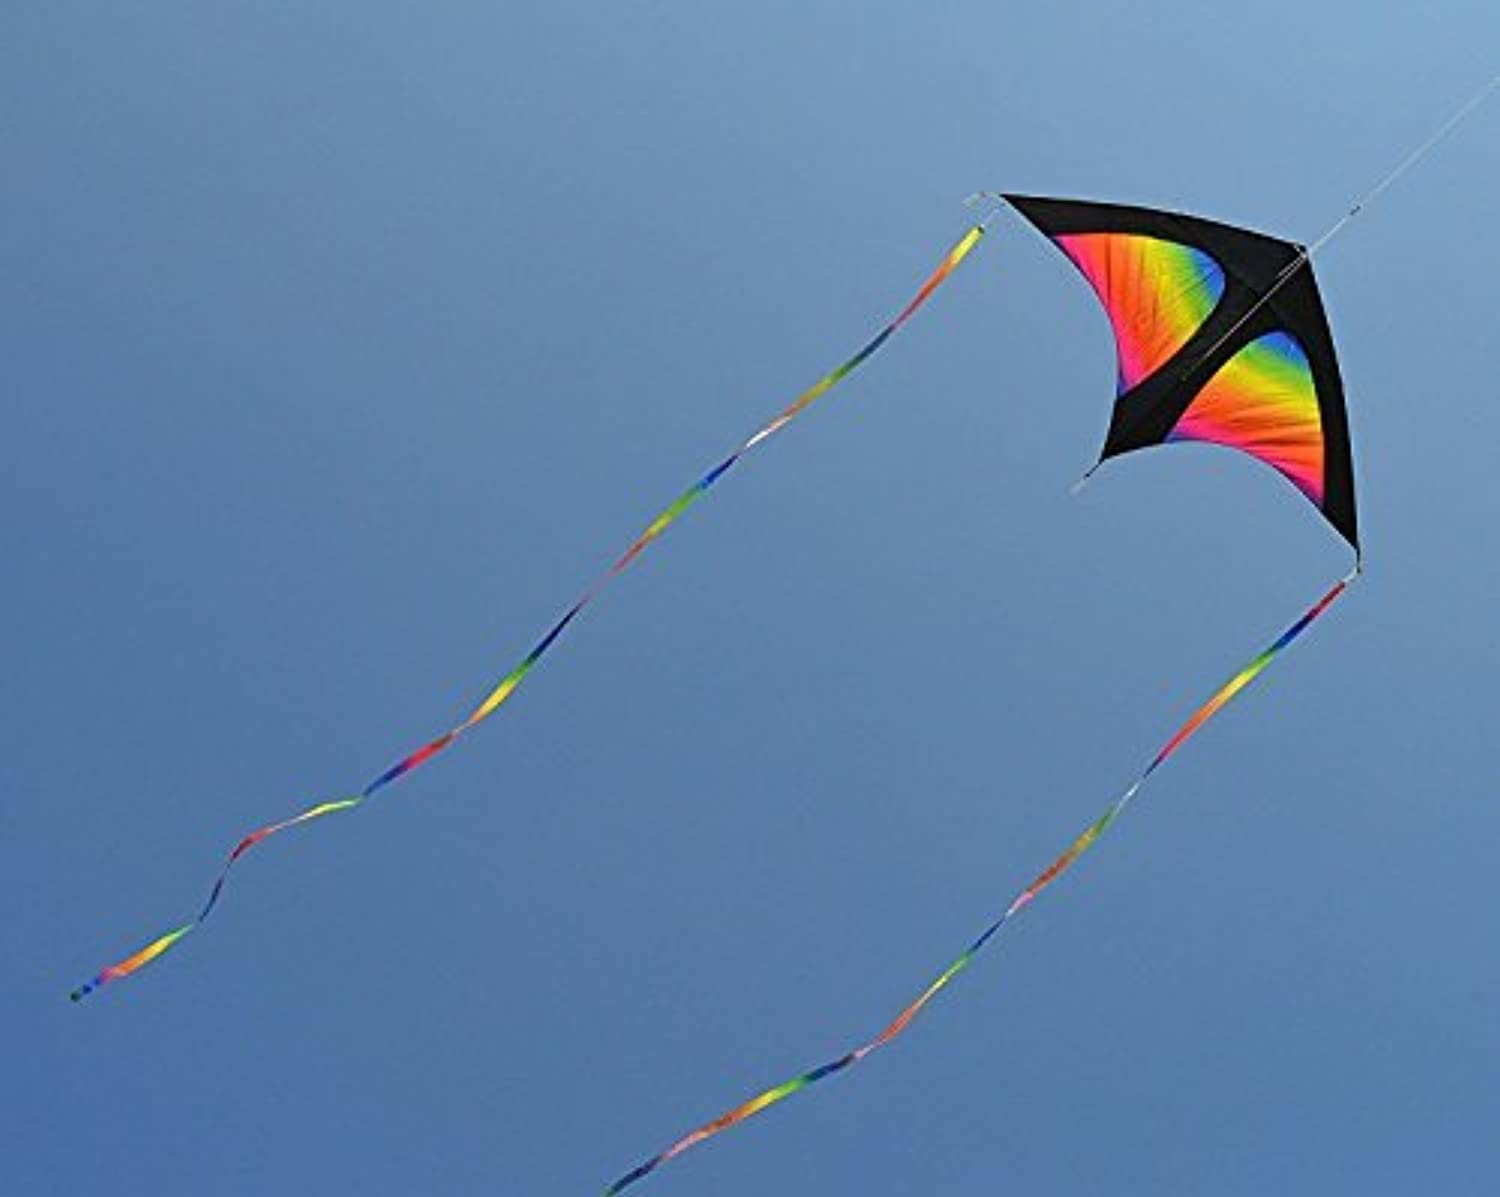 Delta Fish Swim In Sky Kite with Flying Line and Handle Large kite for kids and adults (Rainbow) [並行輸入品]